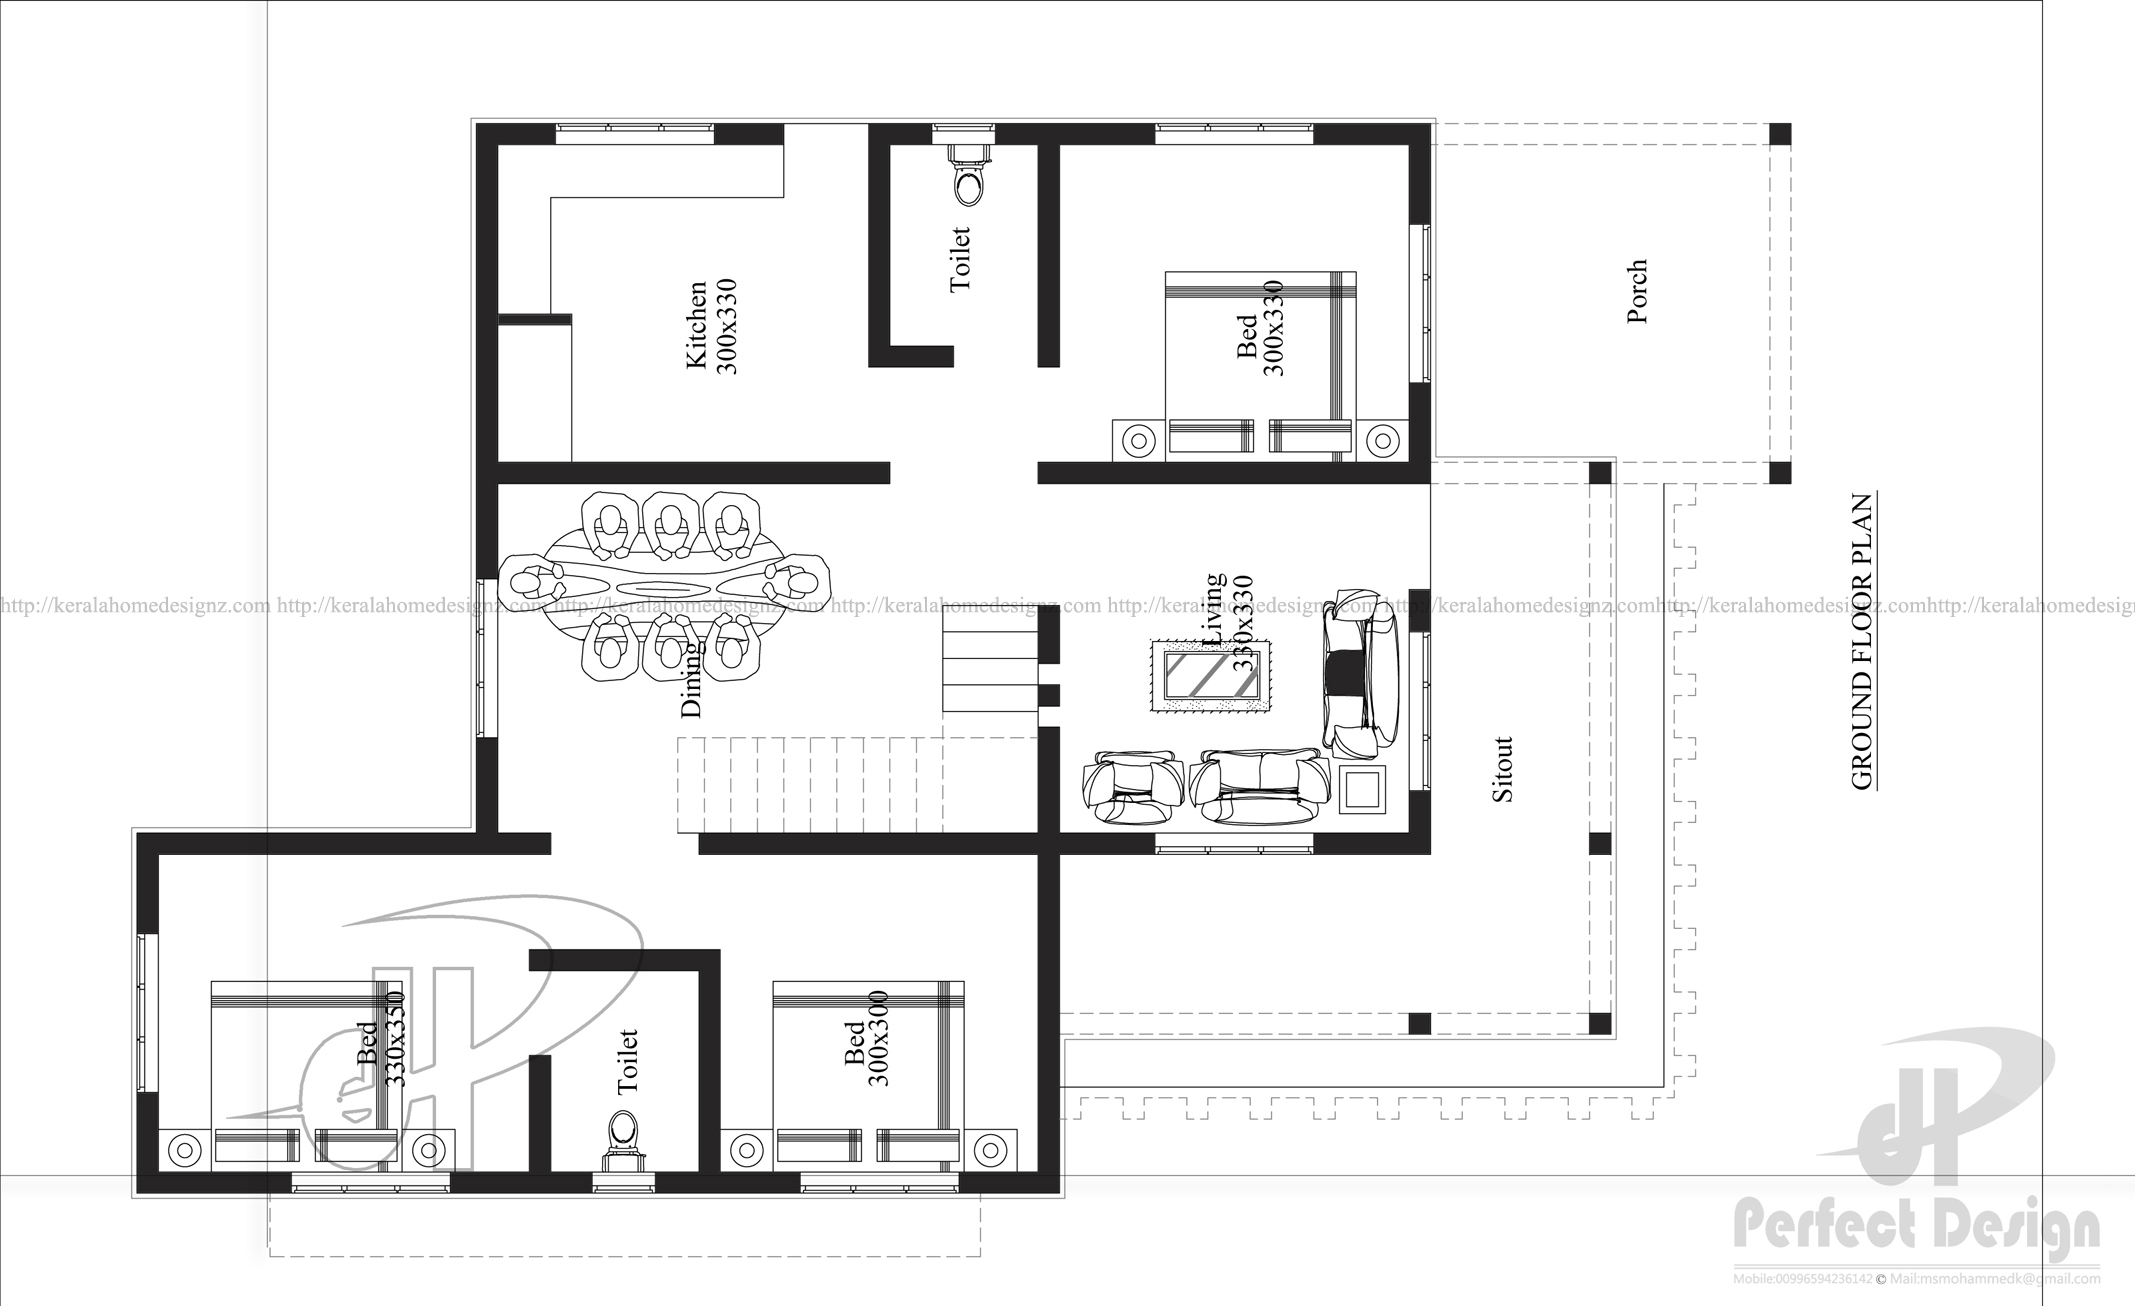 Well designed home plans homemade ftempo for Well designed homes